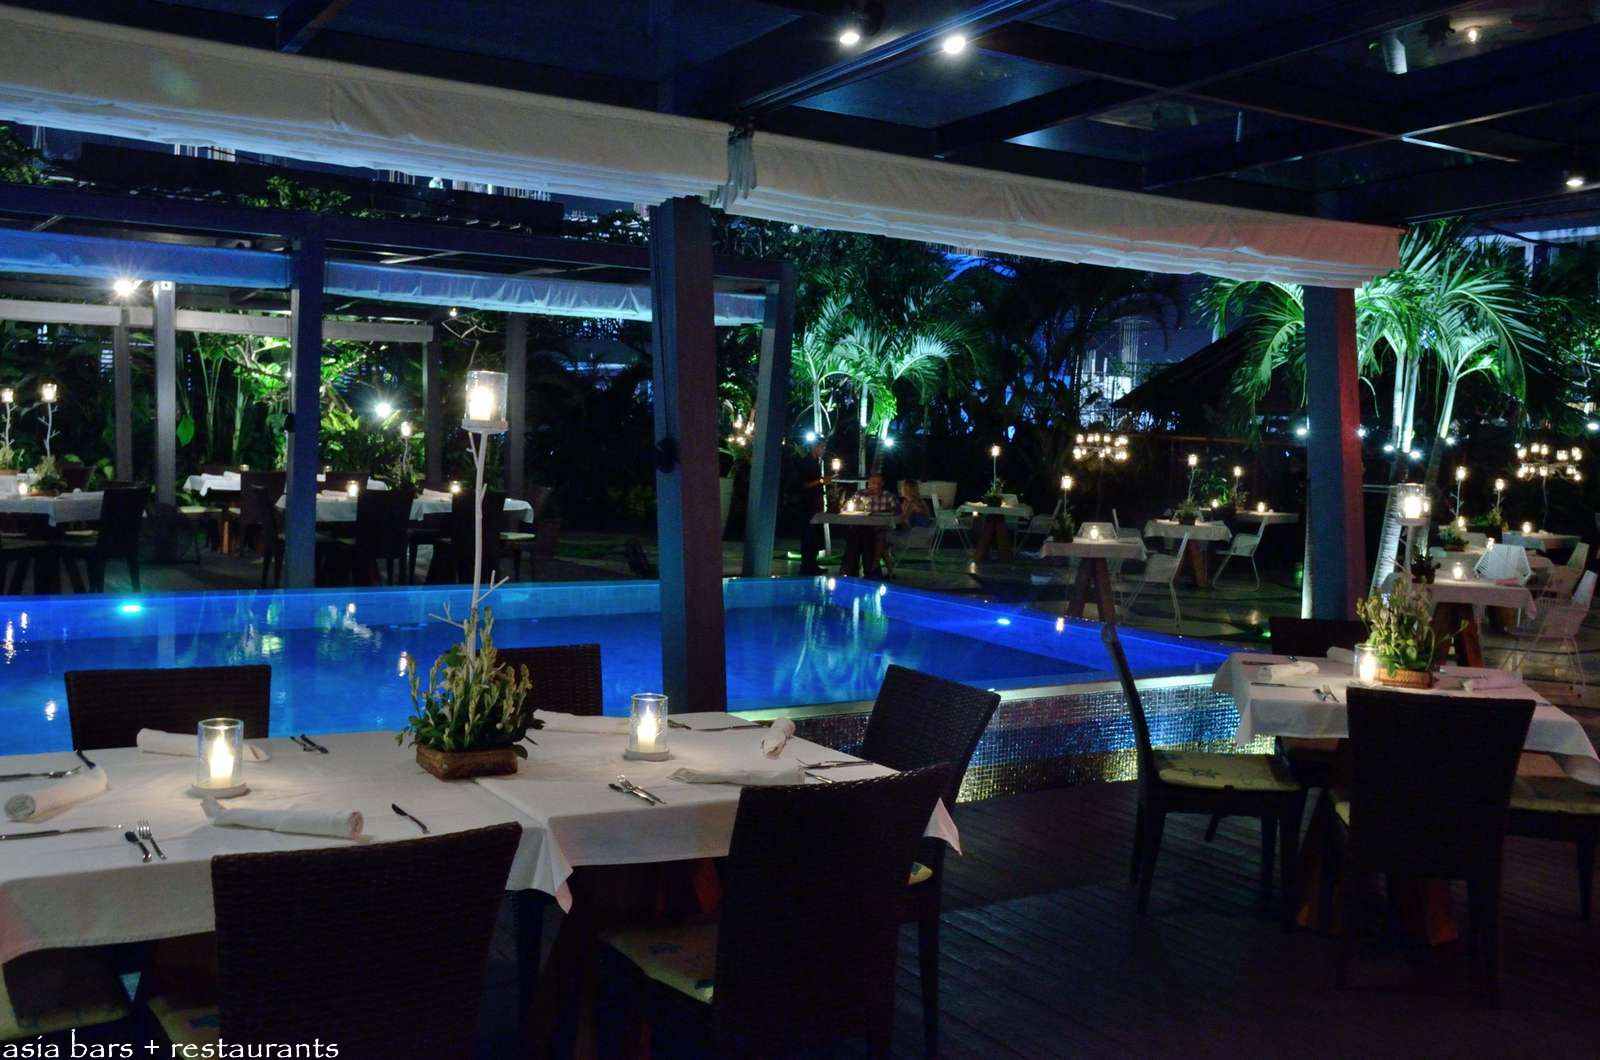 Baba s peranakan themed restaurant at hu u bar in bali for Restaurant with terrace